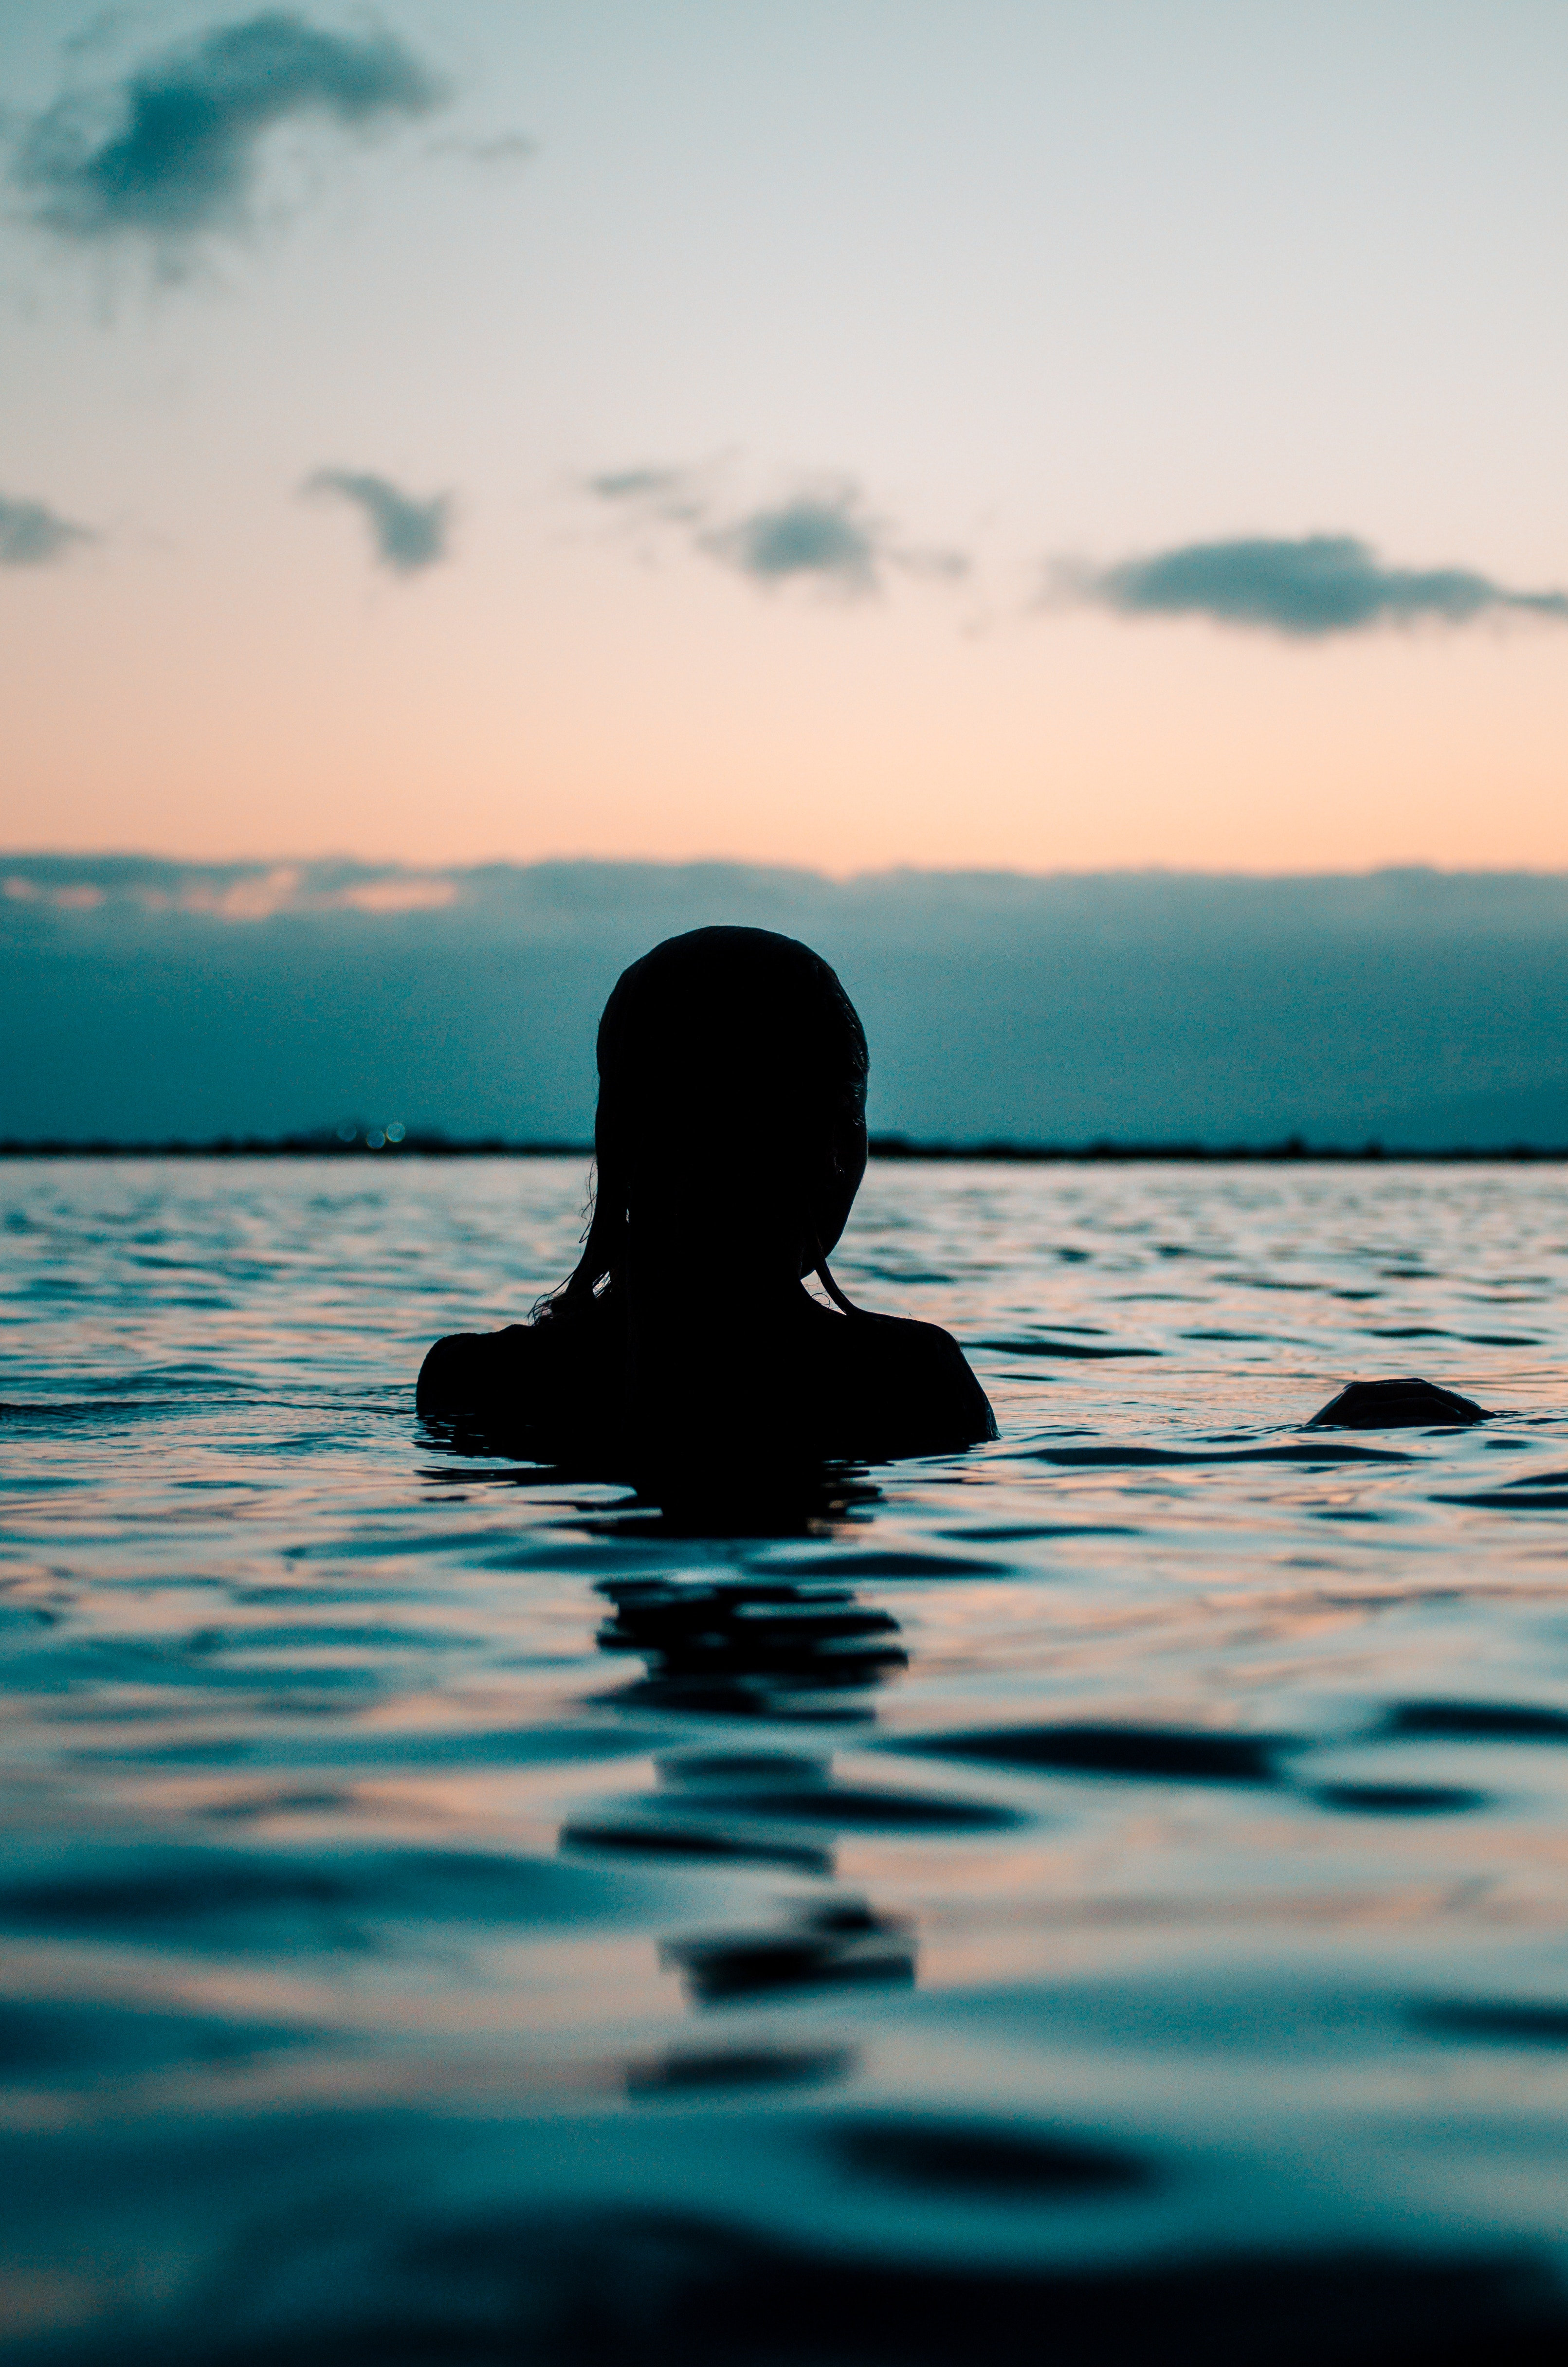 94307 download wallpaper Sunset, Sea, Swimming, Dark, Silhouette, Ripples, Ripple screensavers and pictures for free